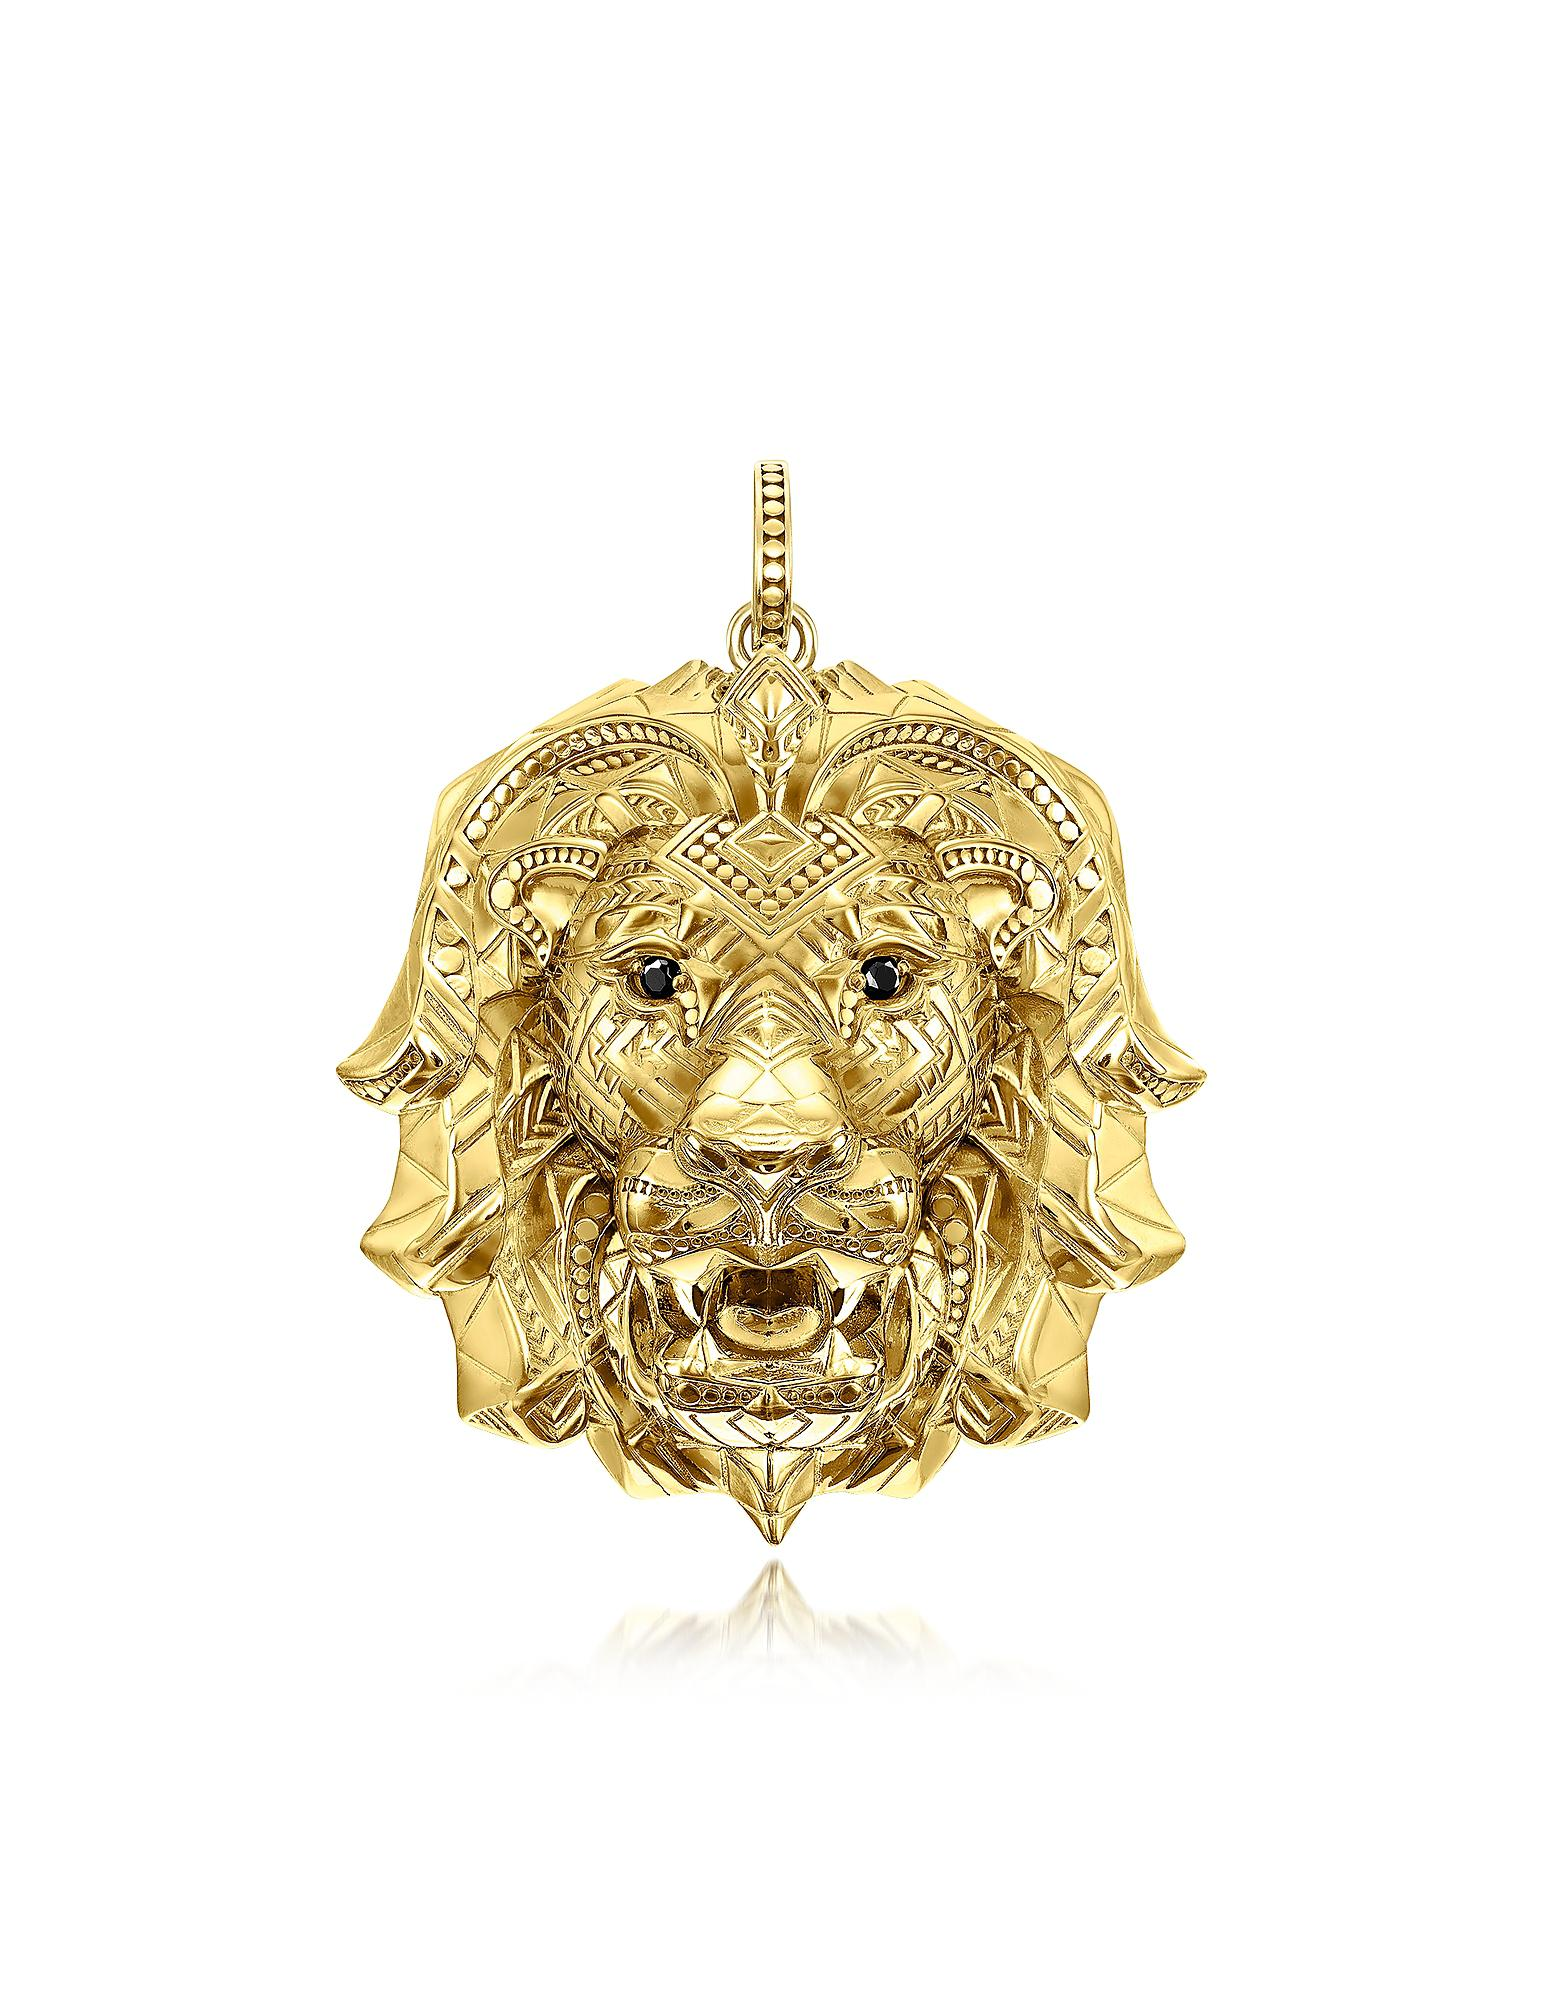 necklaces chain plated head s for lion jewelry luxusteel in steel fashion with necklace item stainless from free gold men color pendant